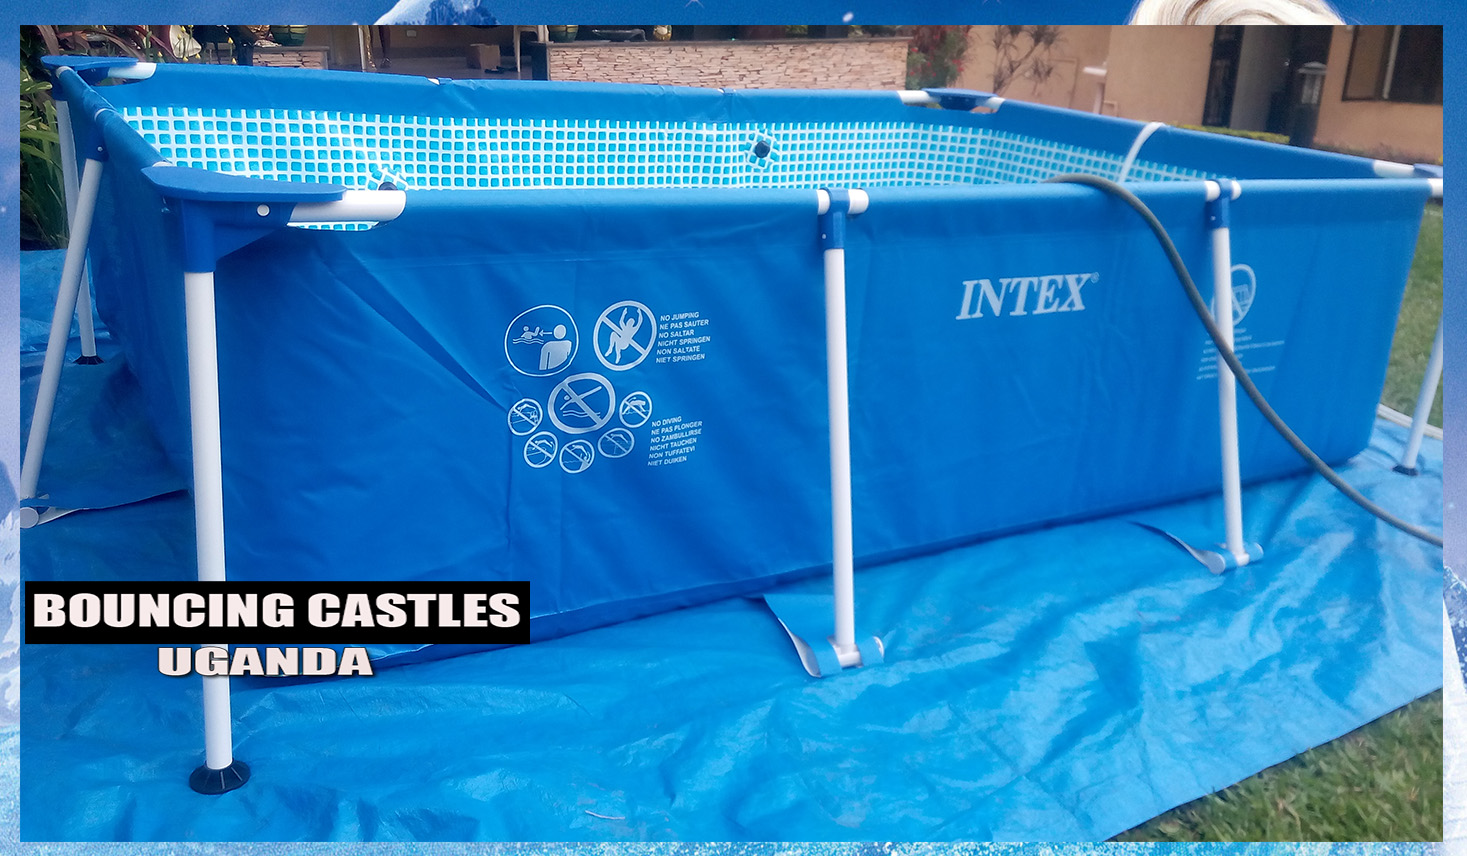 Bouncing castles uganda portable swimming pools for hire for Portable pool